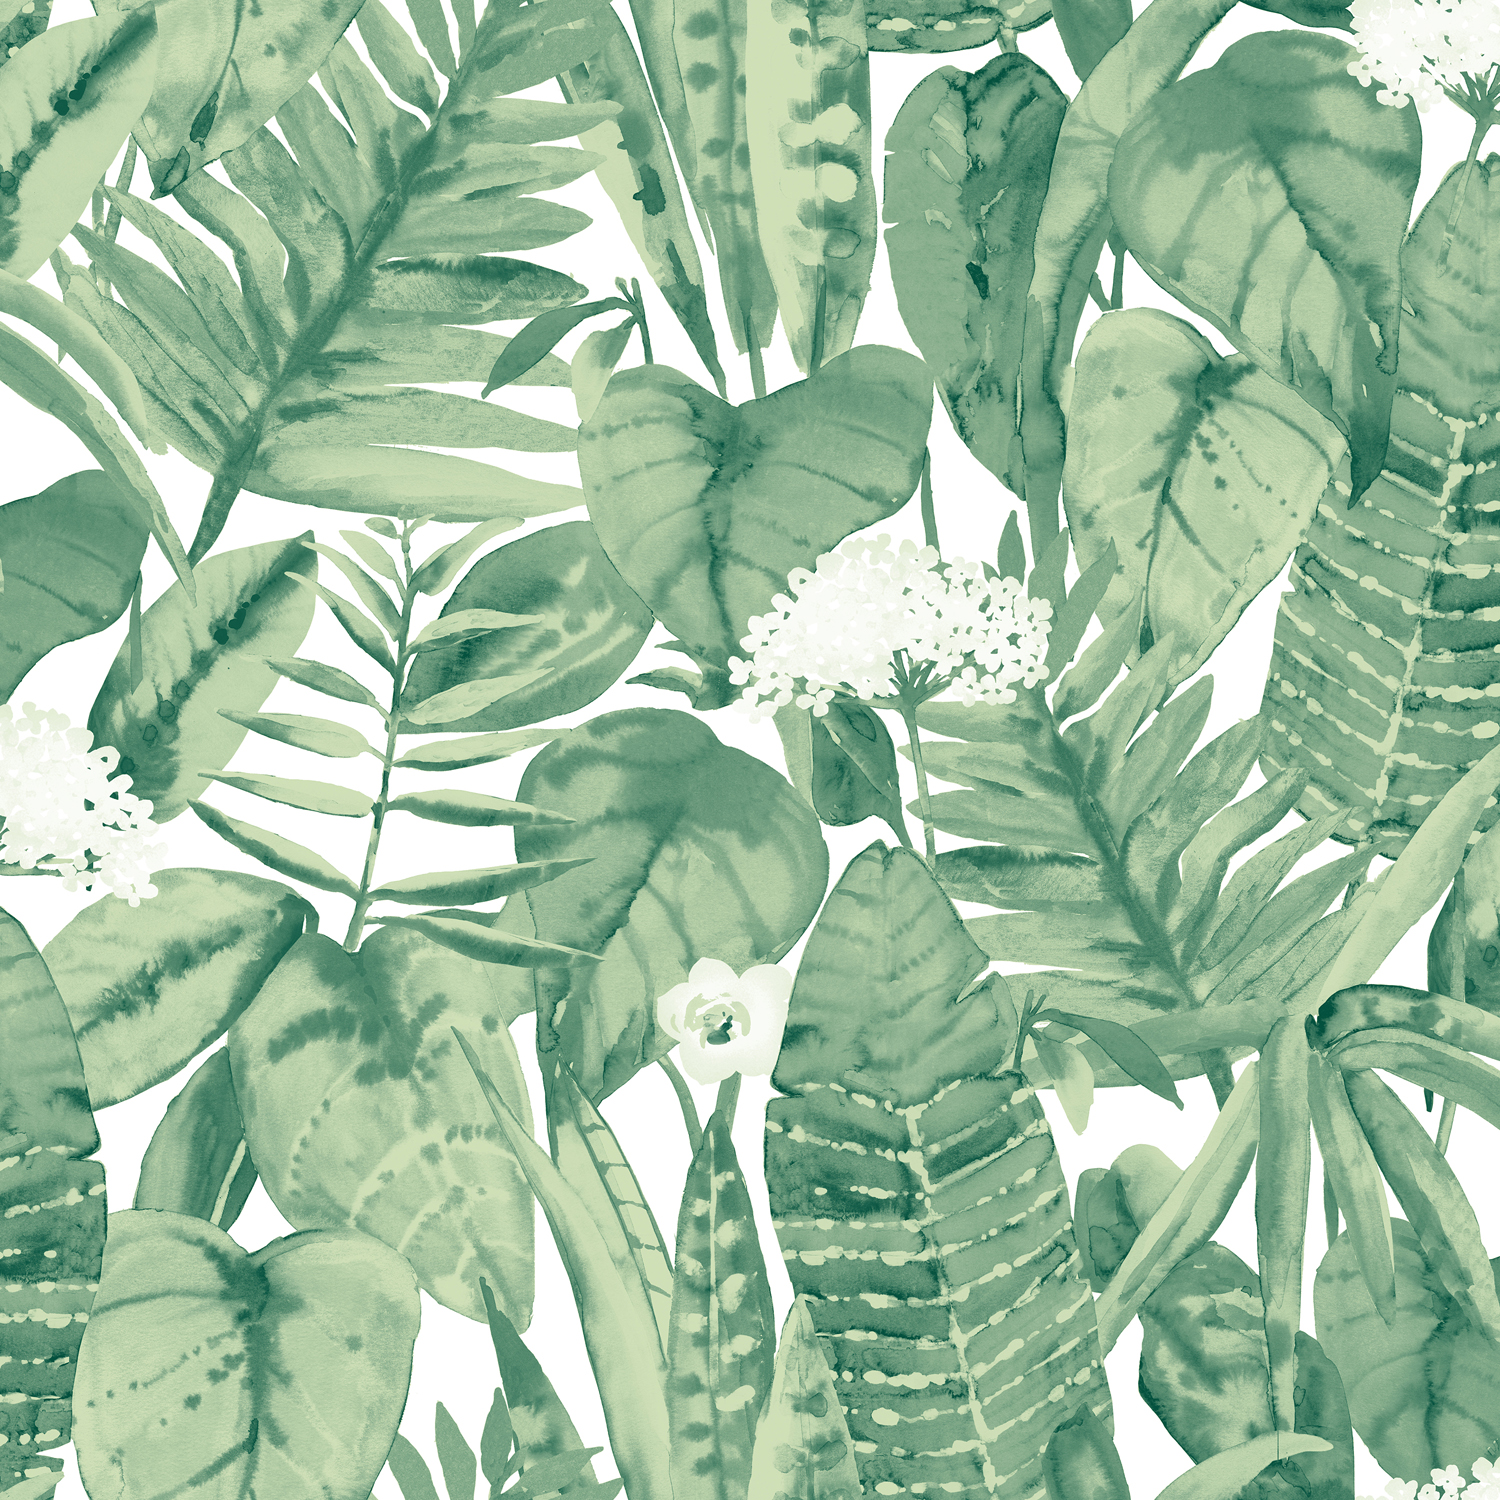 Tempaper® Tropical Jungle Green Self-Adhesive Wallpaper